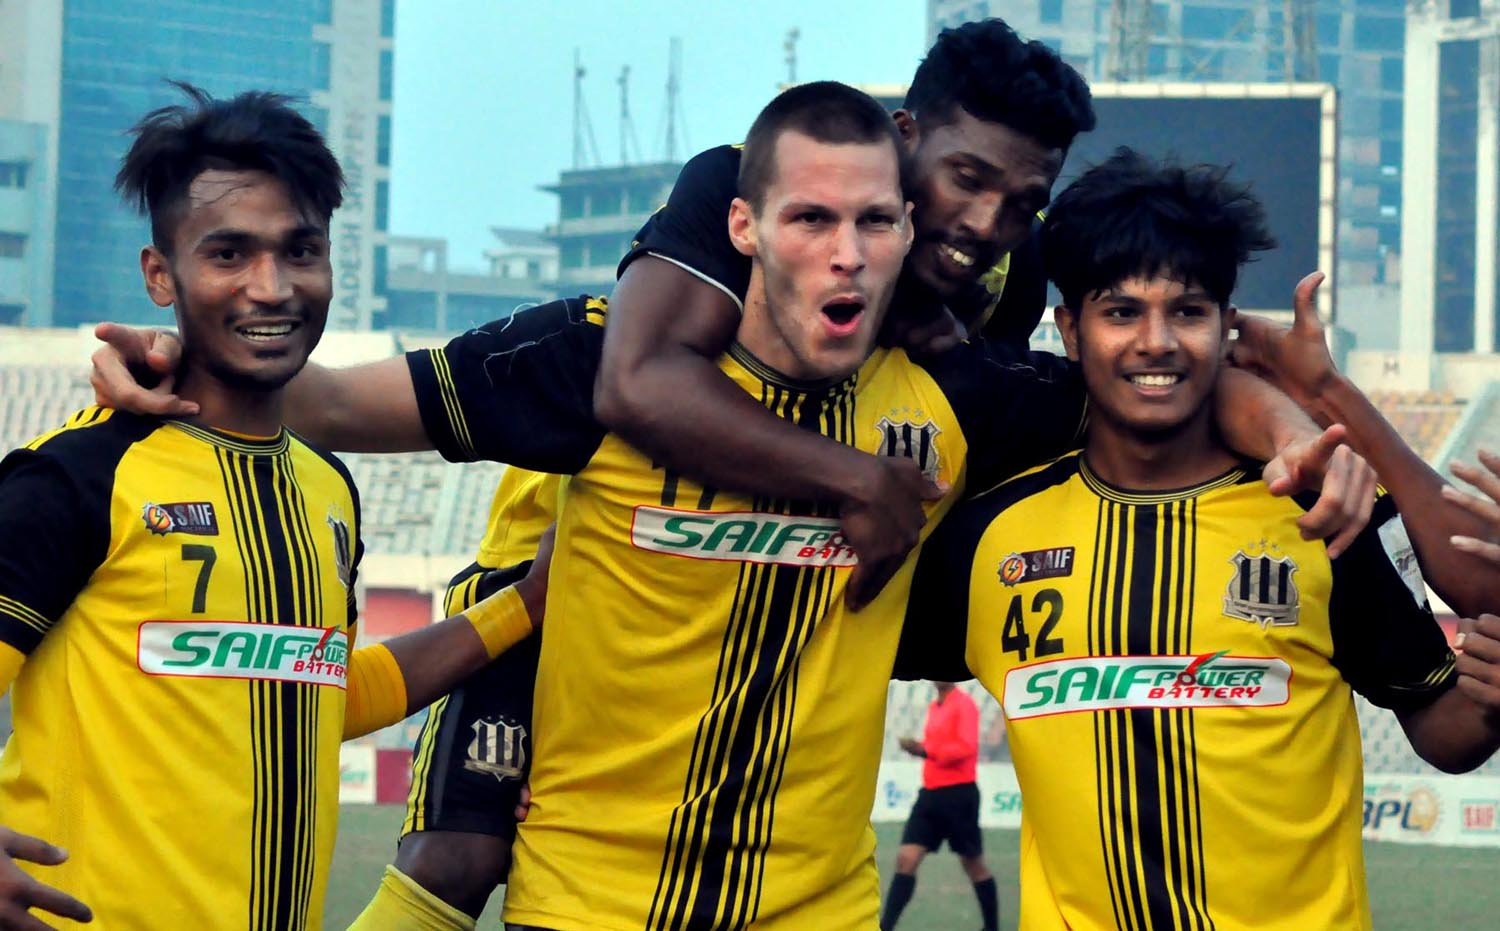 Players of Saif Sporting Club celebrating after defeating Chittagong Abahani Limited by three goals to nil in their match of the Saif Power Battery Bangladesh Premier League Football at the Bangabandhu National Stadium on Sunday.